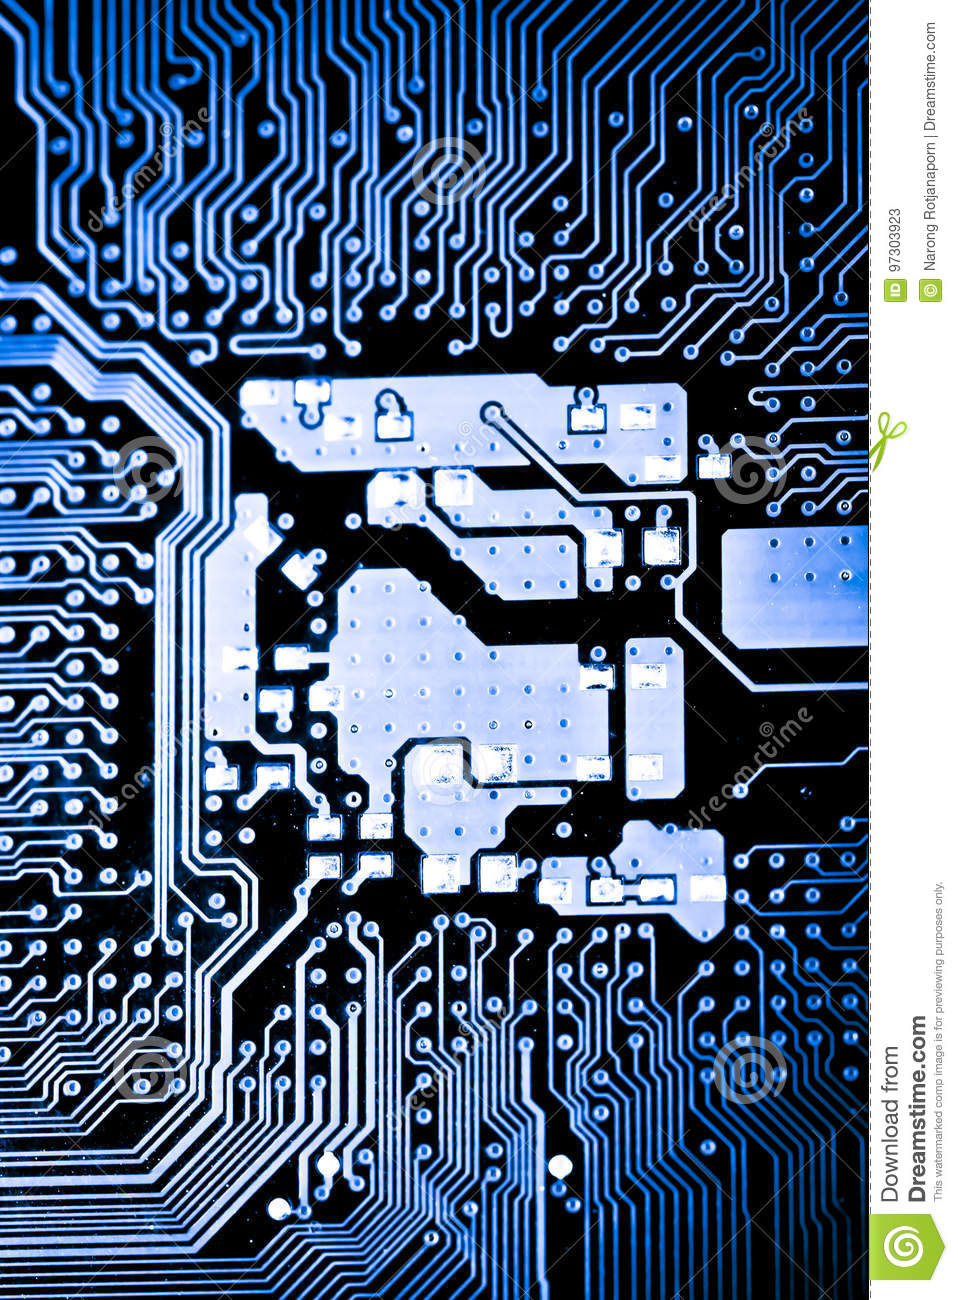 Close Up Of Circuits Electronic On Mainboard Technology Computer Circuit And Logic Design Abstract Background Boardcpu Motherboardmain Boardsystem Boardmobo